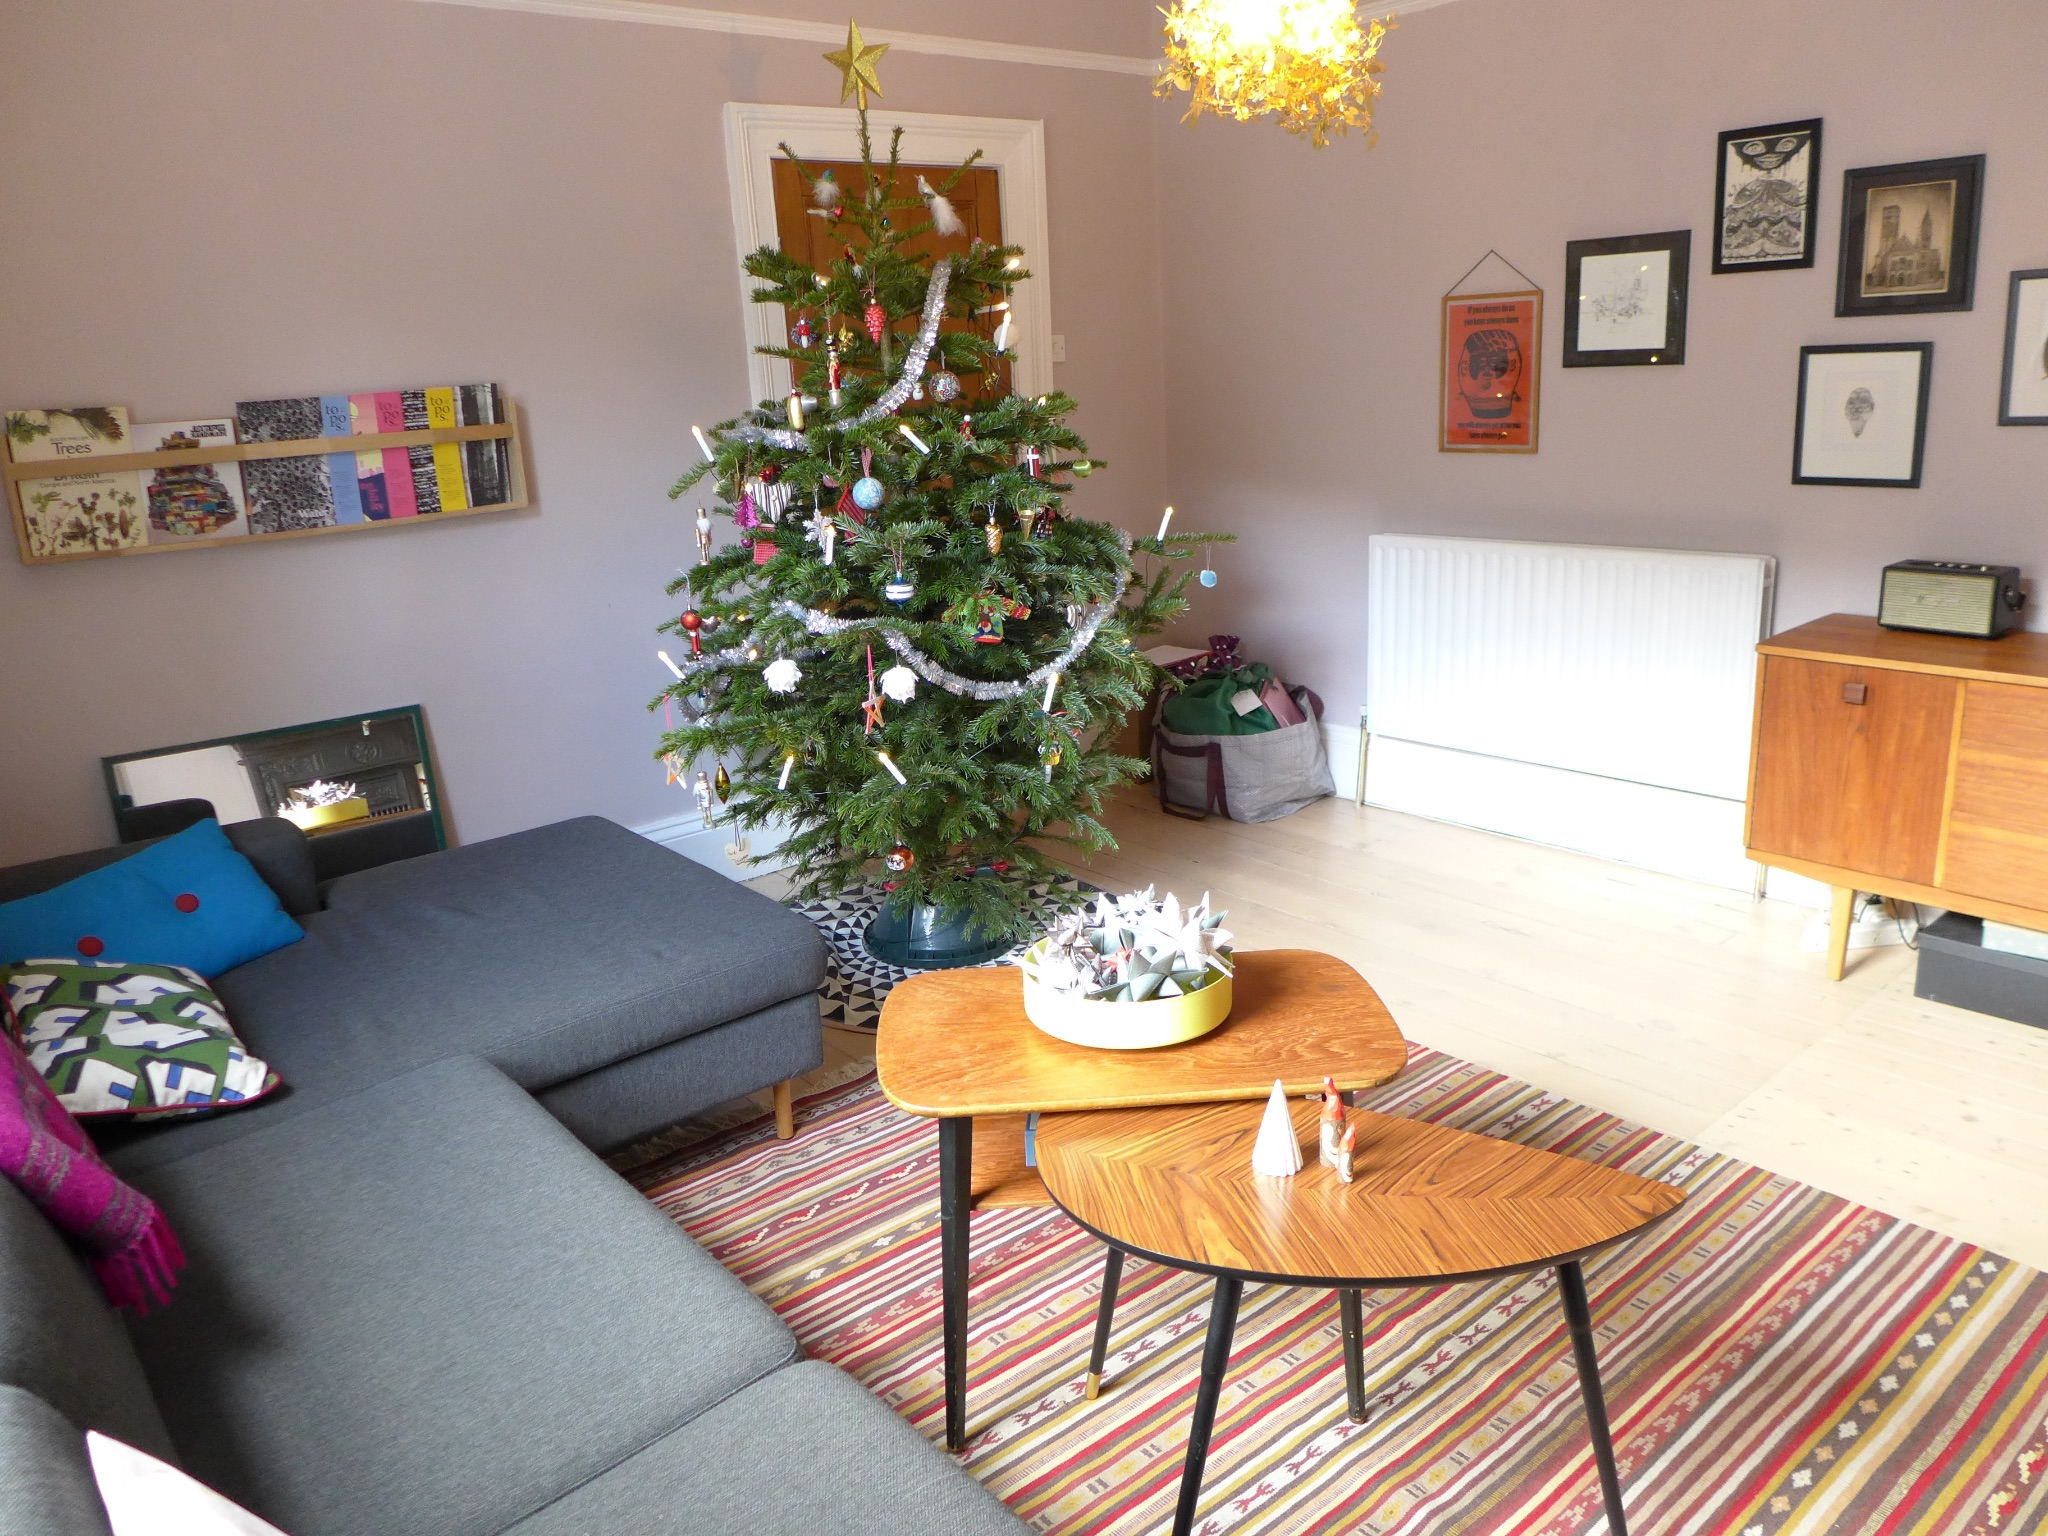 4 bedroom end terraced house For Sale in Calderdale - Photograph 7.